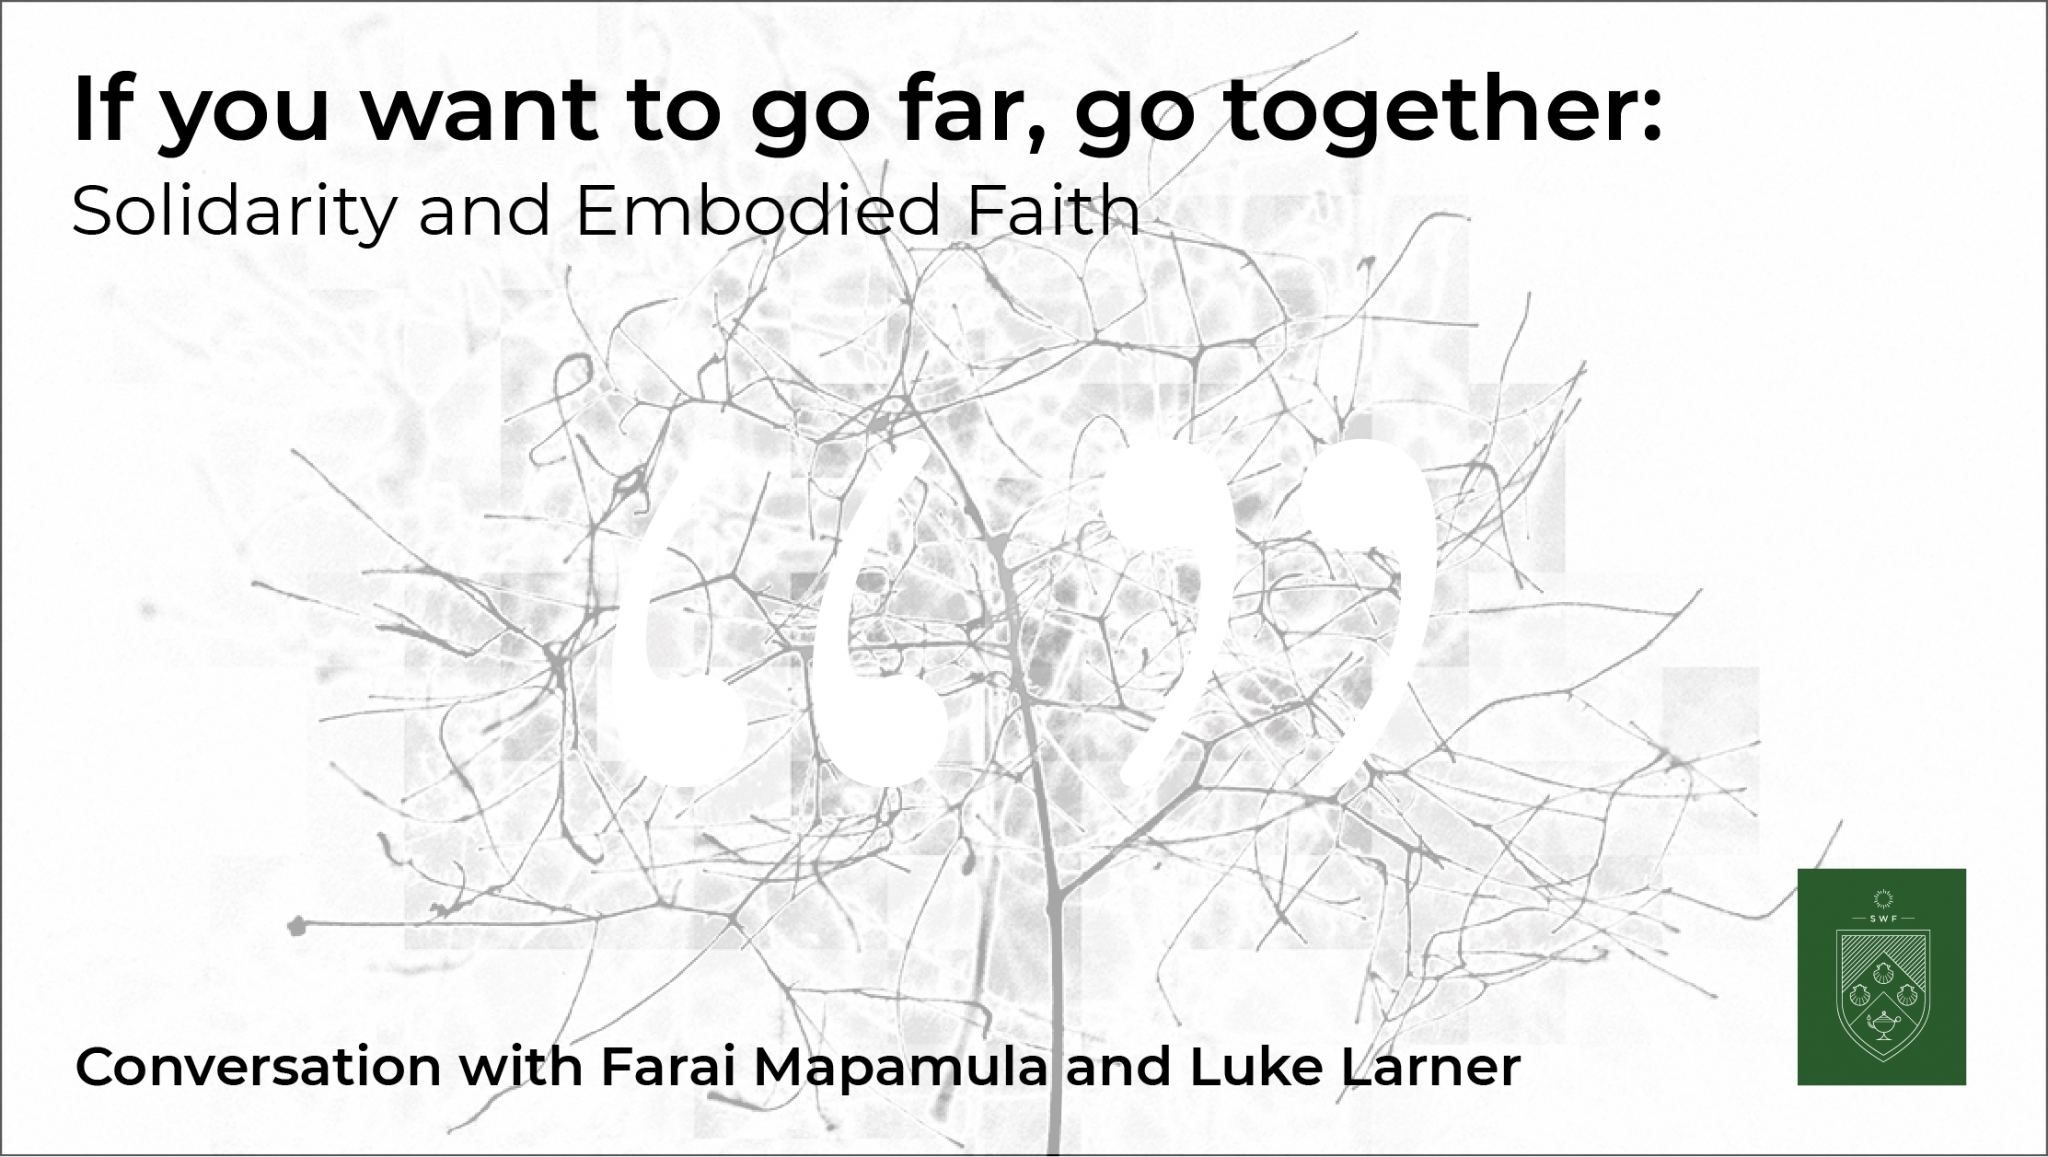 Podcast 8: If you want to go far, go together